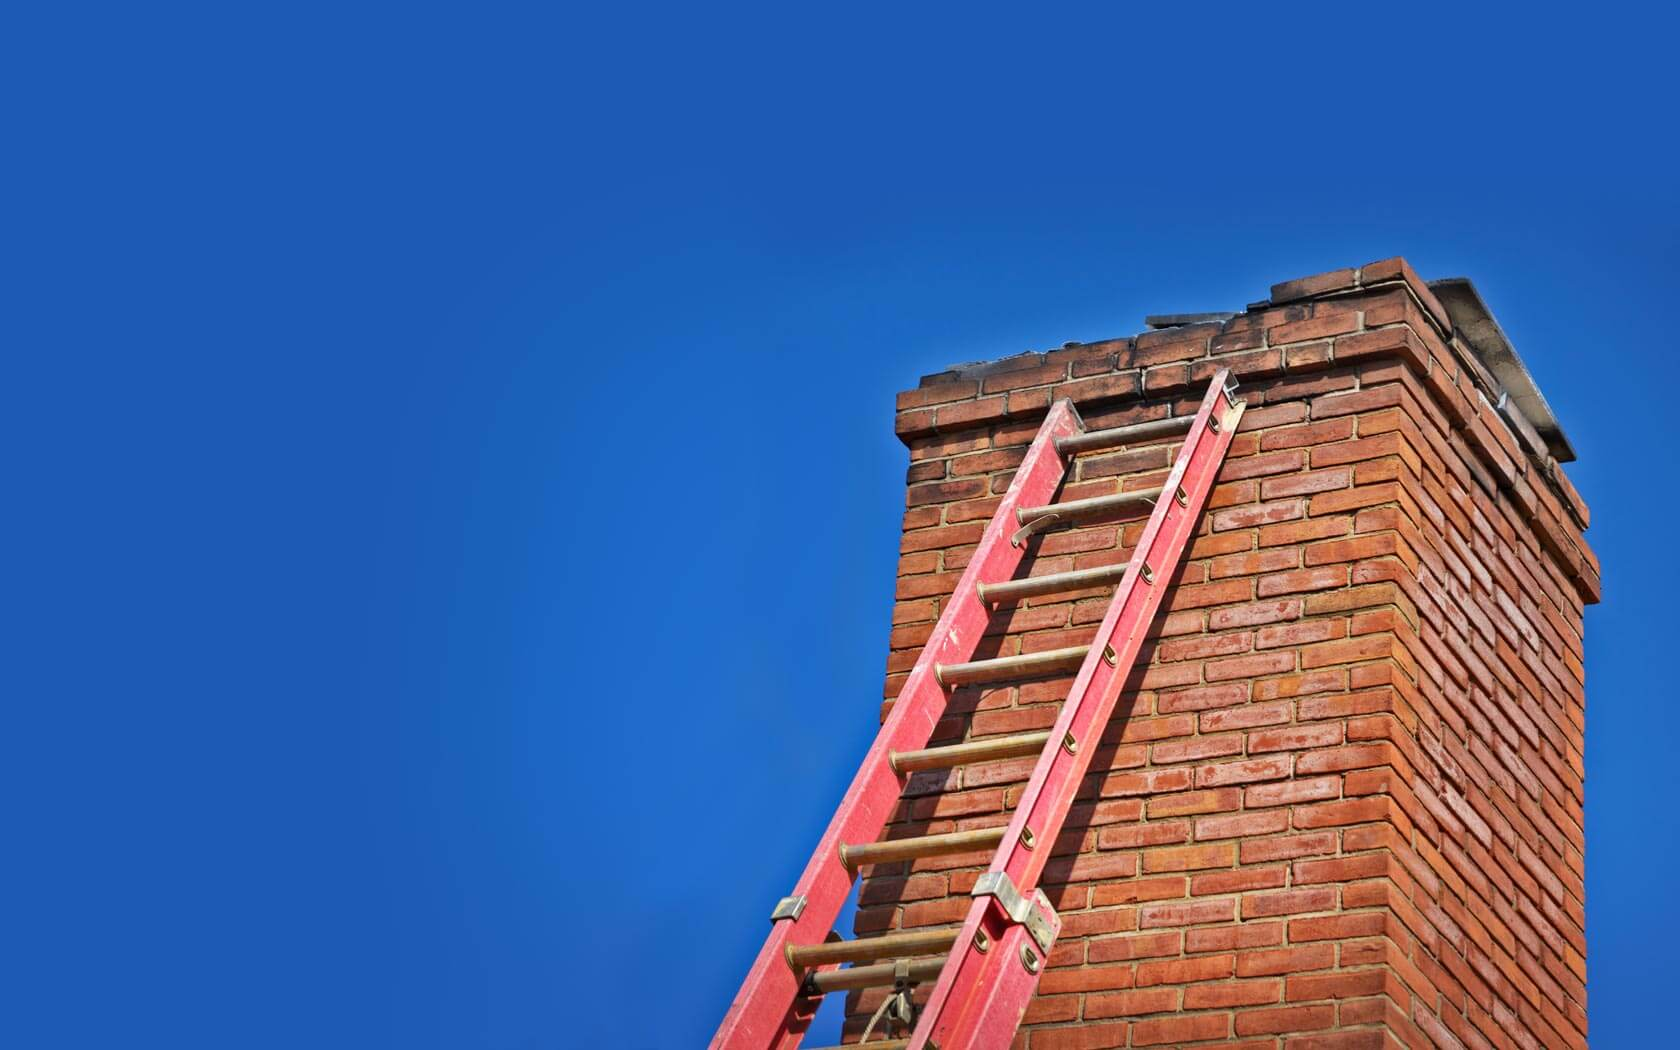 Grand Rapids Chimney Cleaning